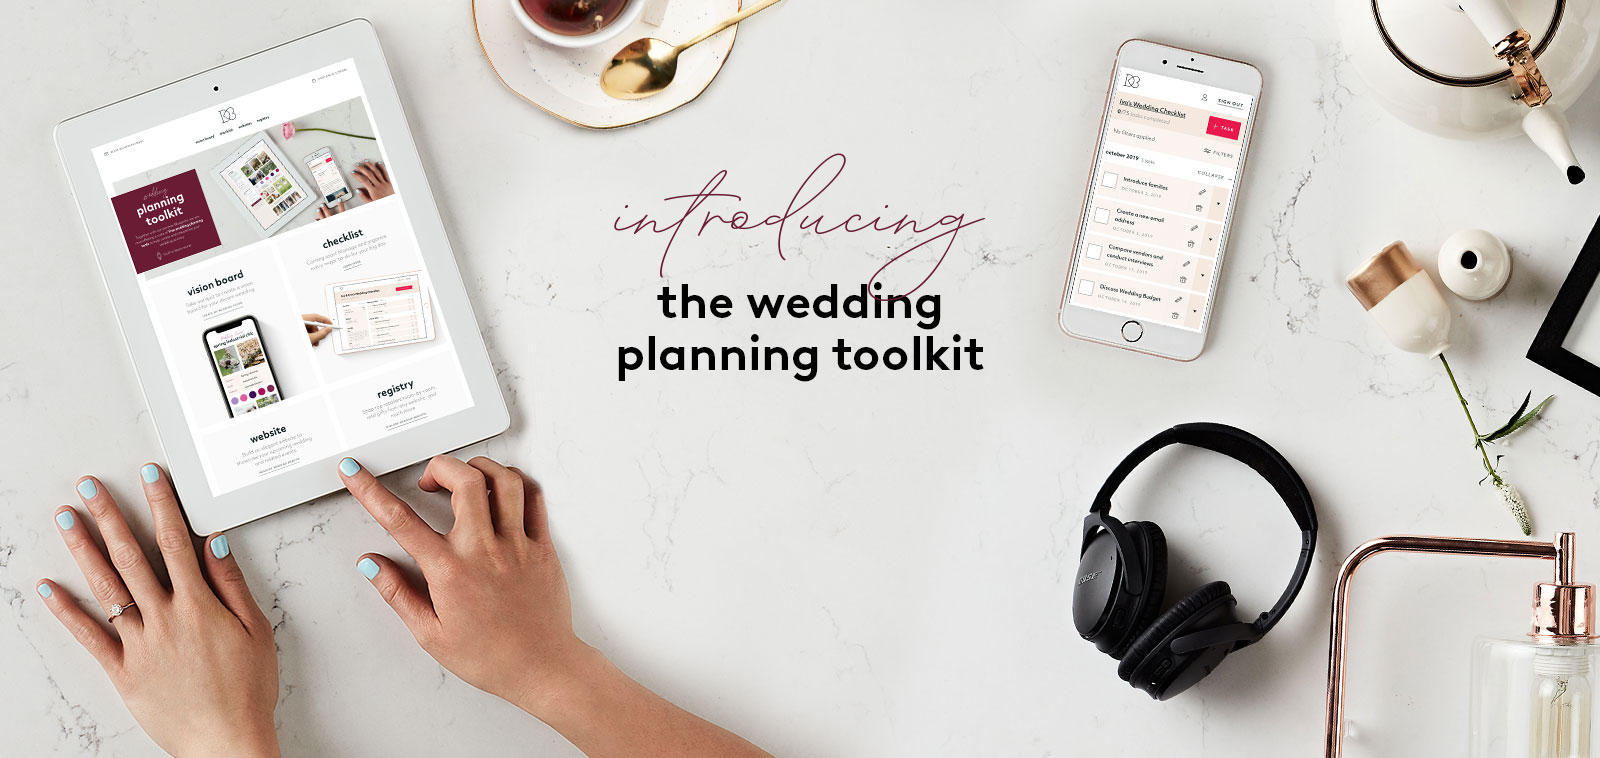 Wedding toolkit to plan all wedding needs.